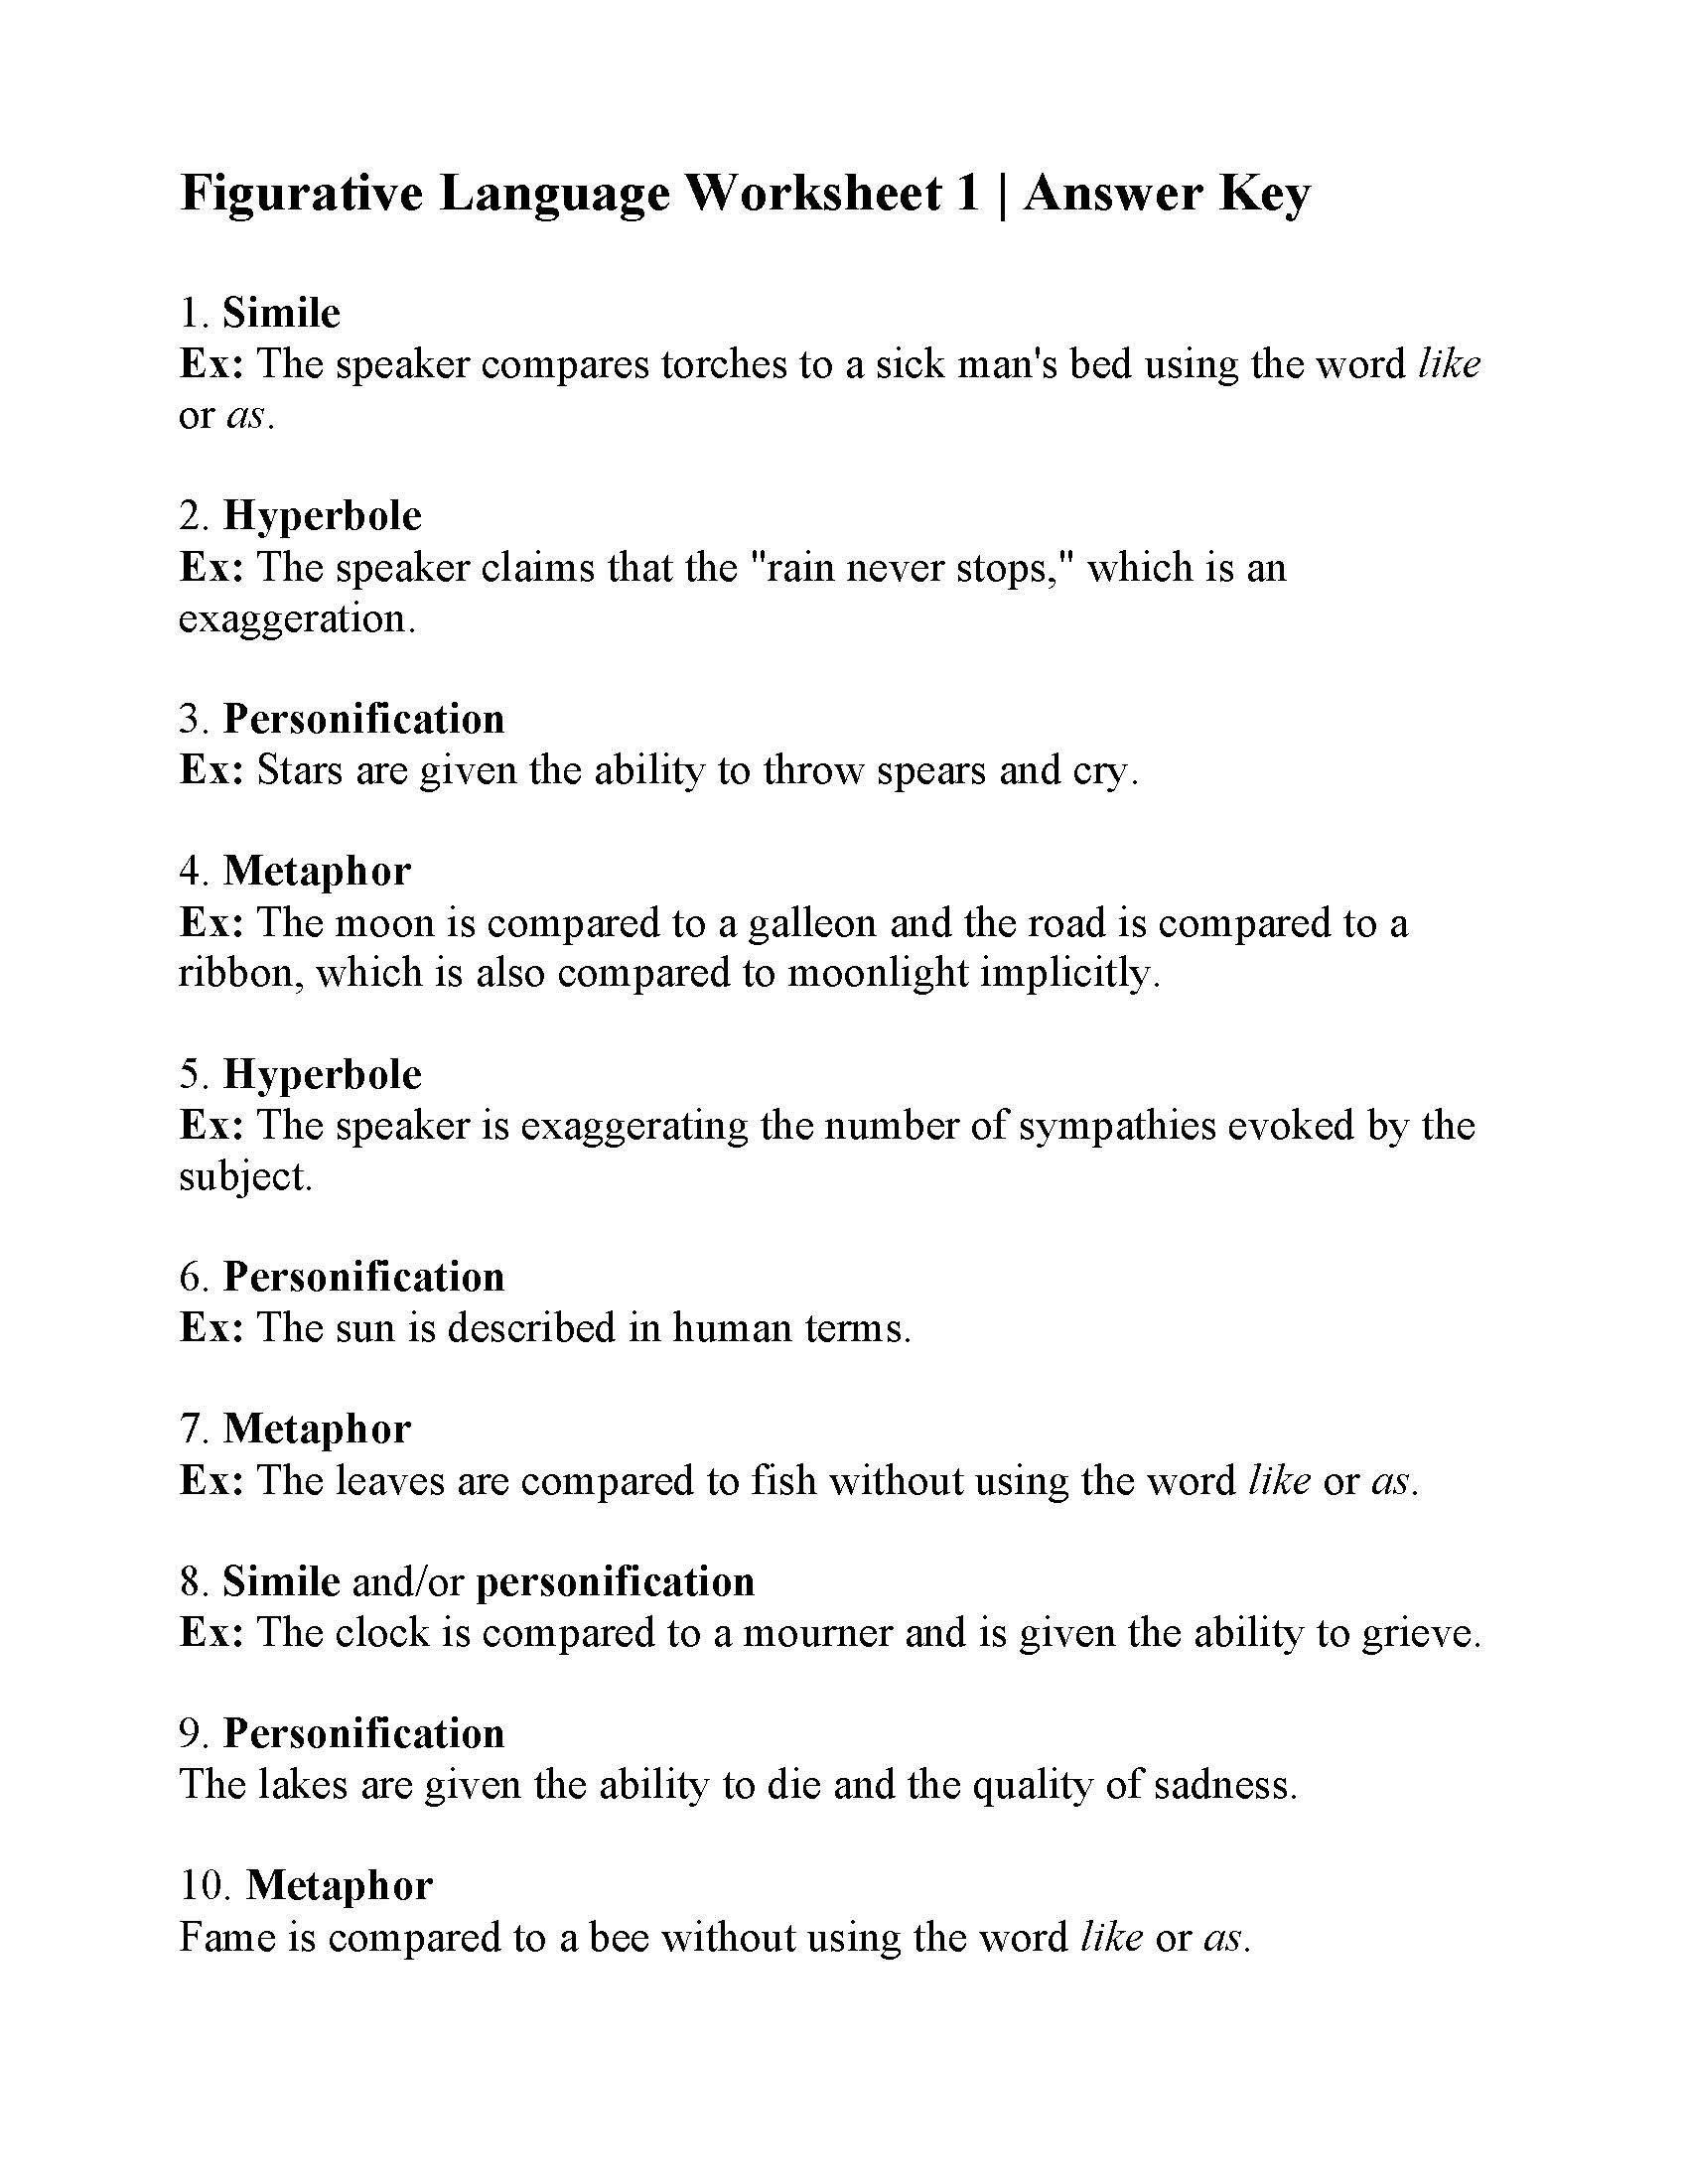 Figurative Language Worksheet High School Figurative Language Worksheet Answers Ereading Worksheets